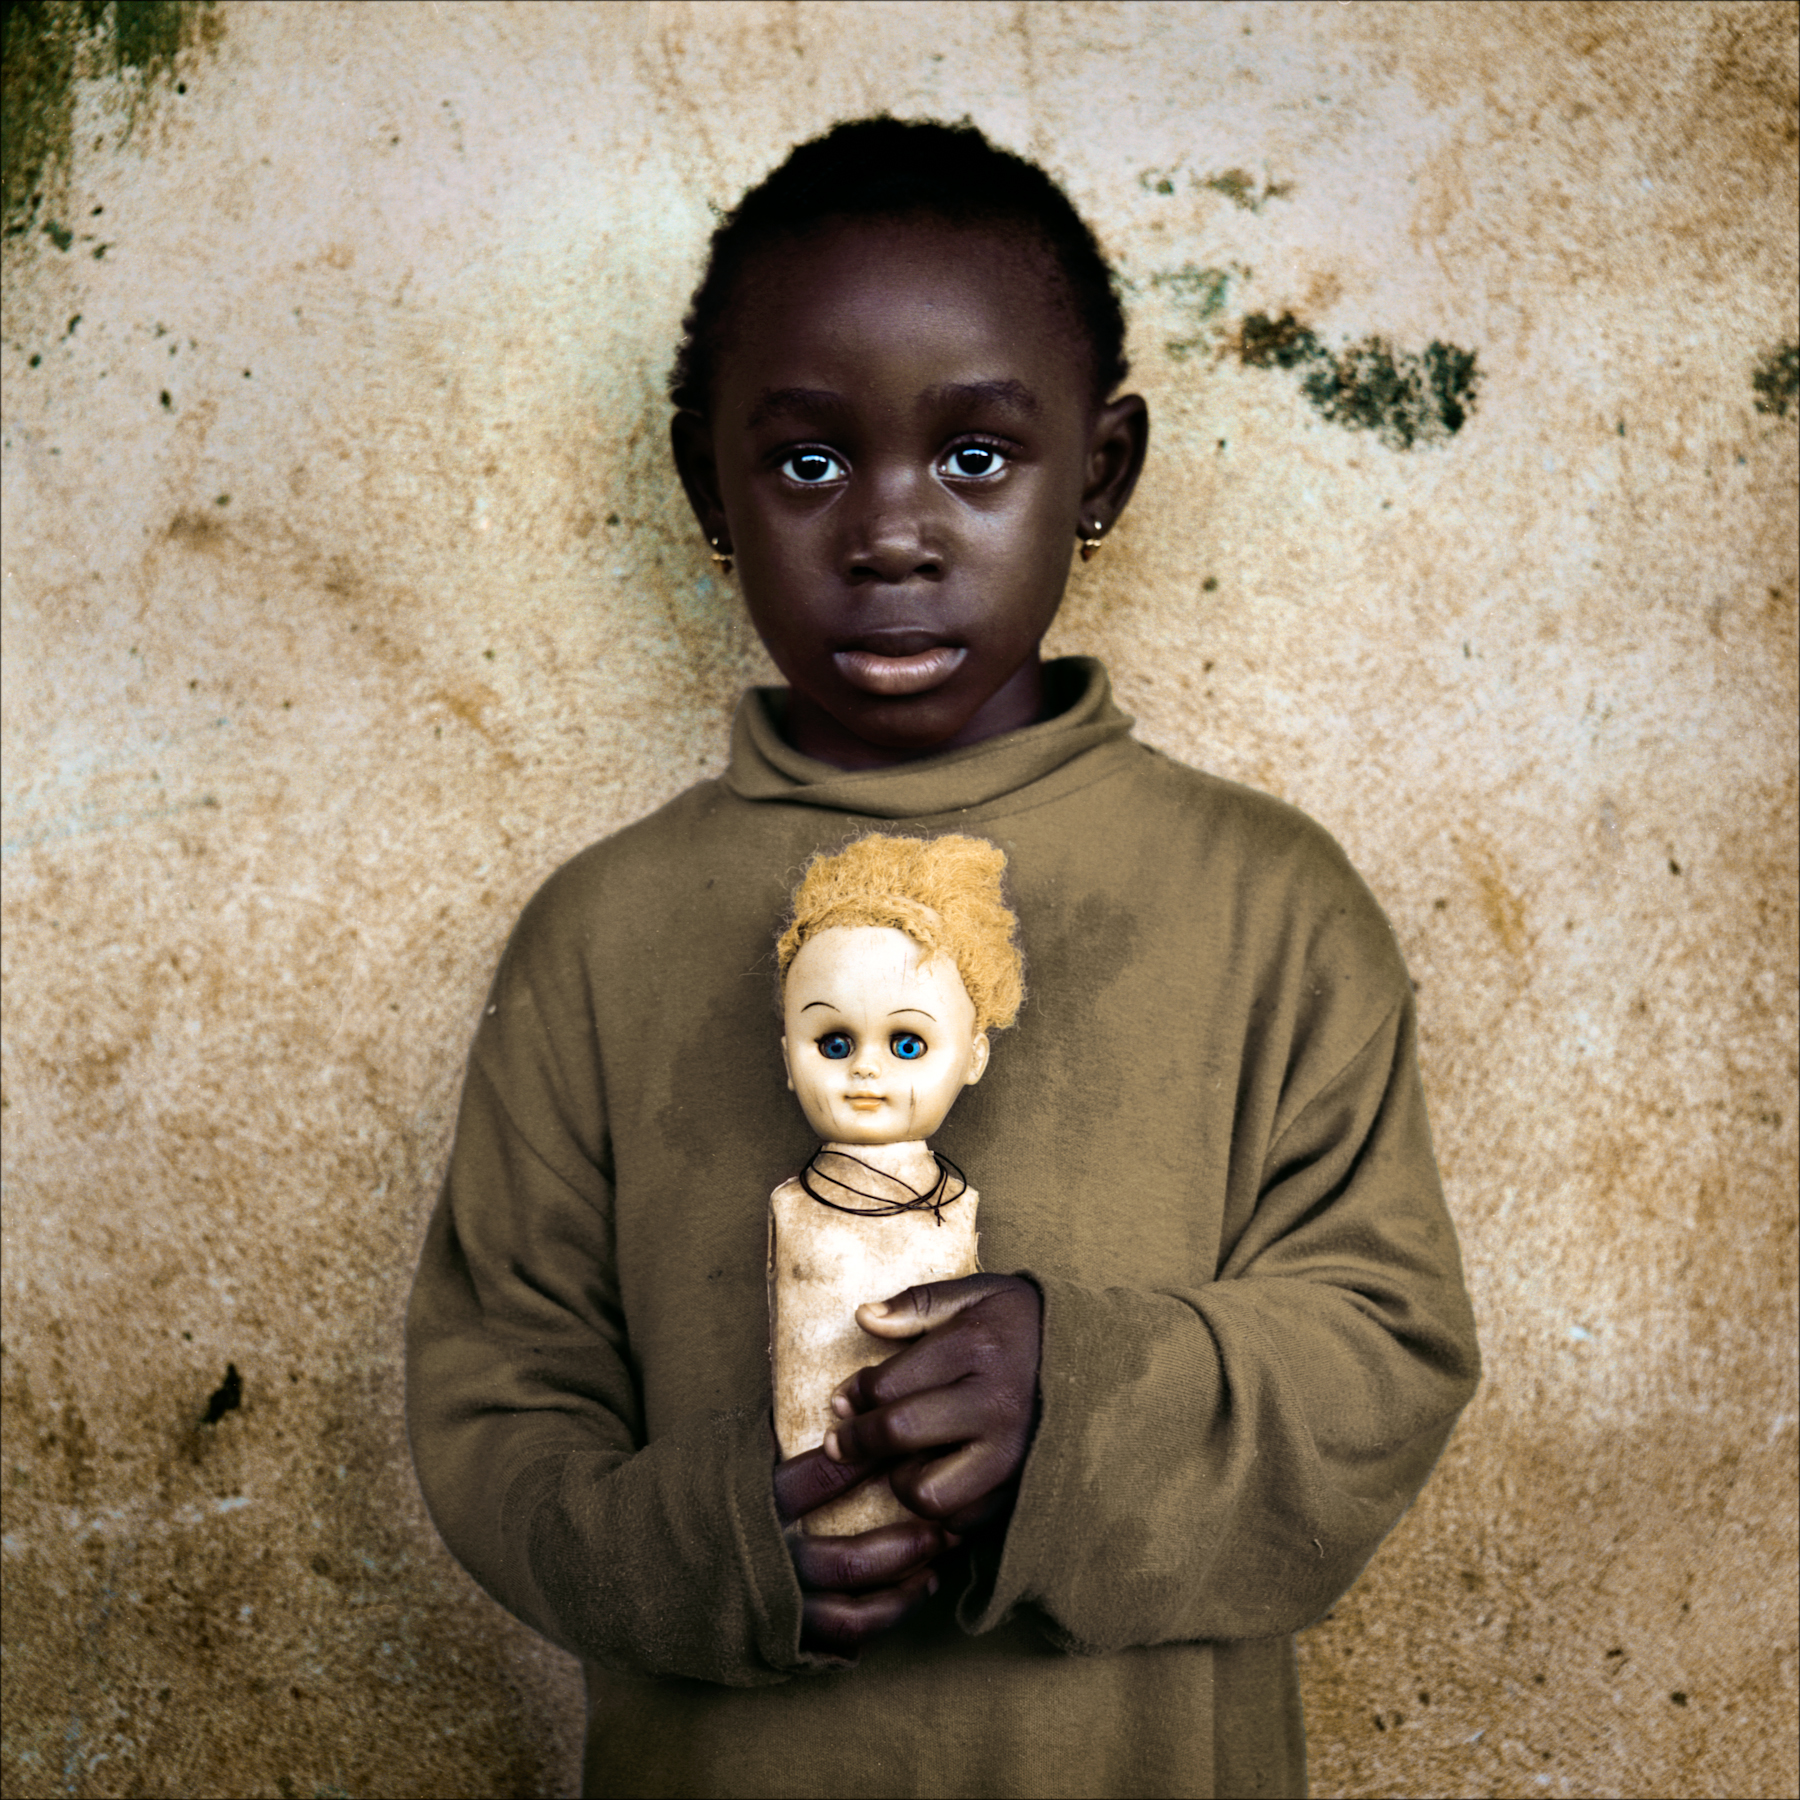 Girl with broken white doll, Ketou.